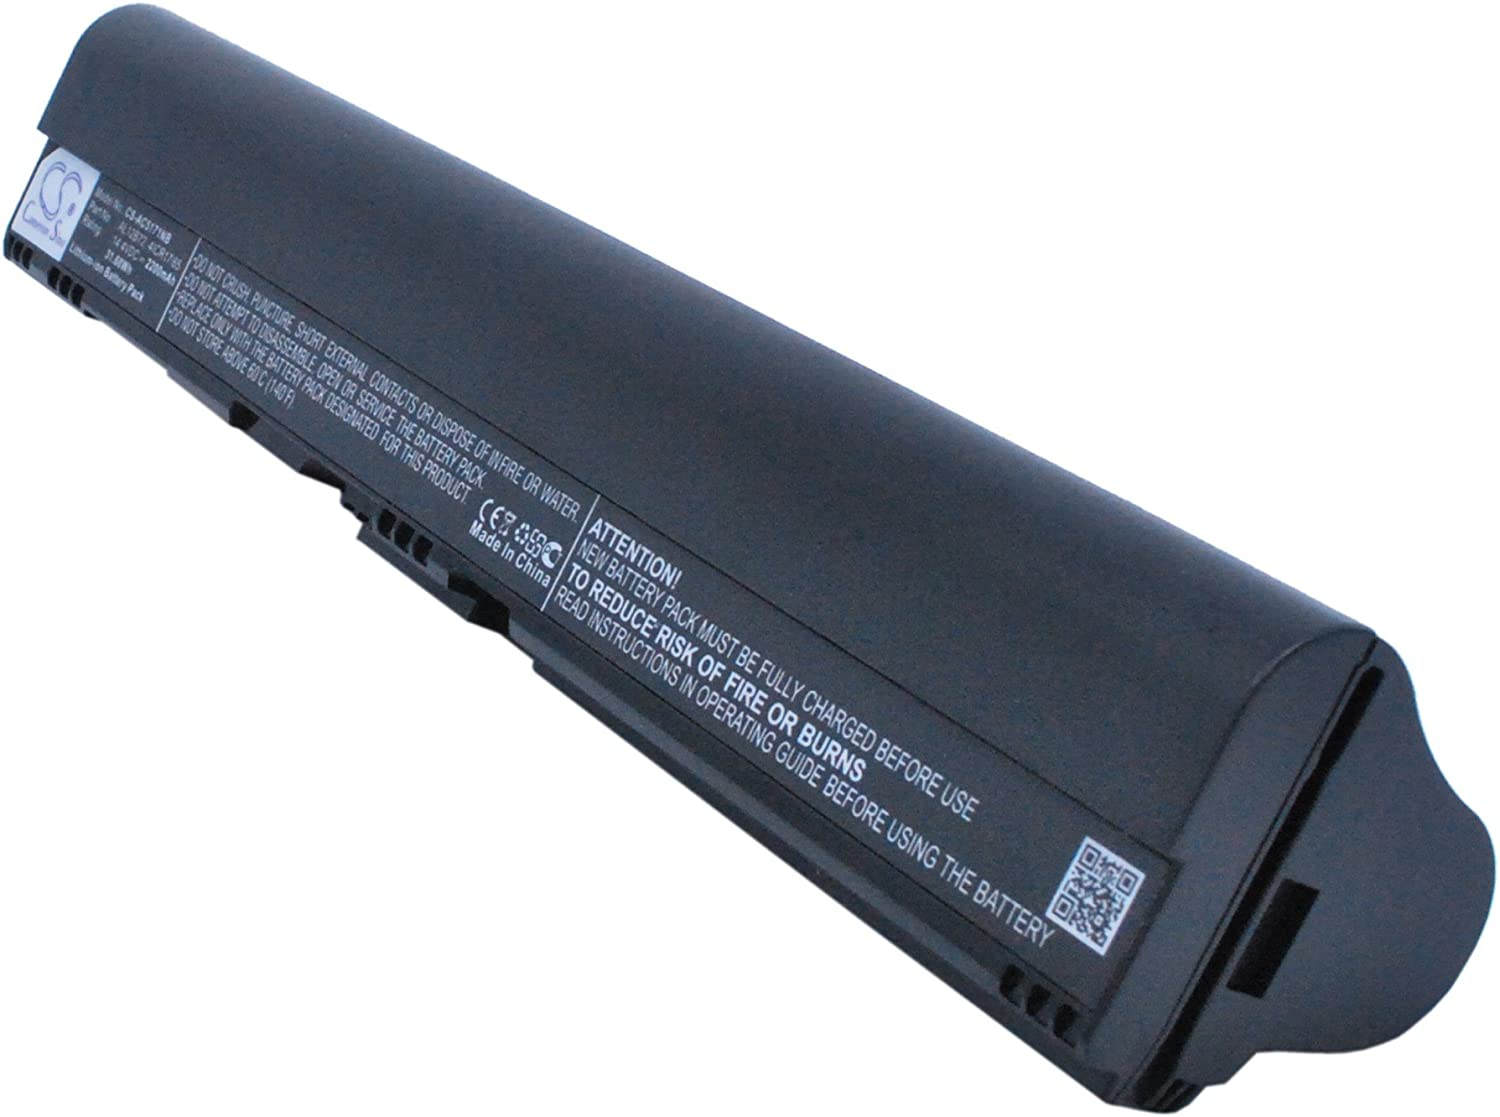 2200mAh Battery Replacement for AcerAspire One 725, Aspire One 756, Aspire V5-171, Chromebook AC710, Gateway One ZX4260, P/N 4ICR17/65, AL12B31, AL12B32, AL12B72, AL12X32